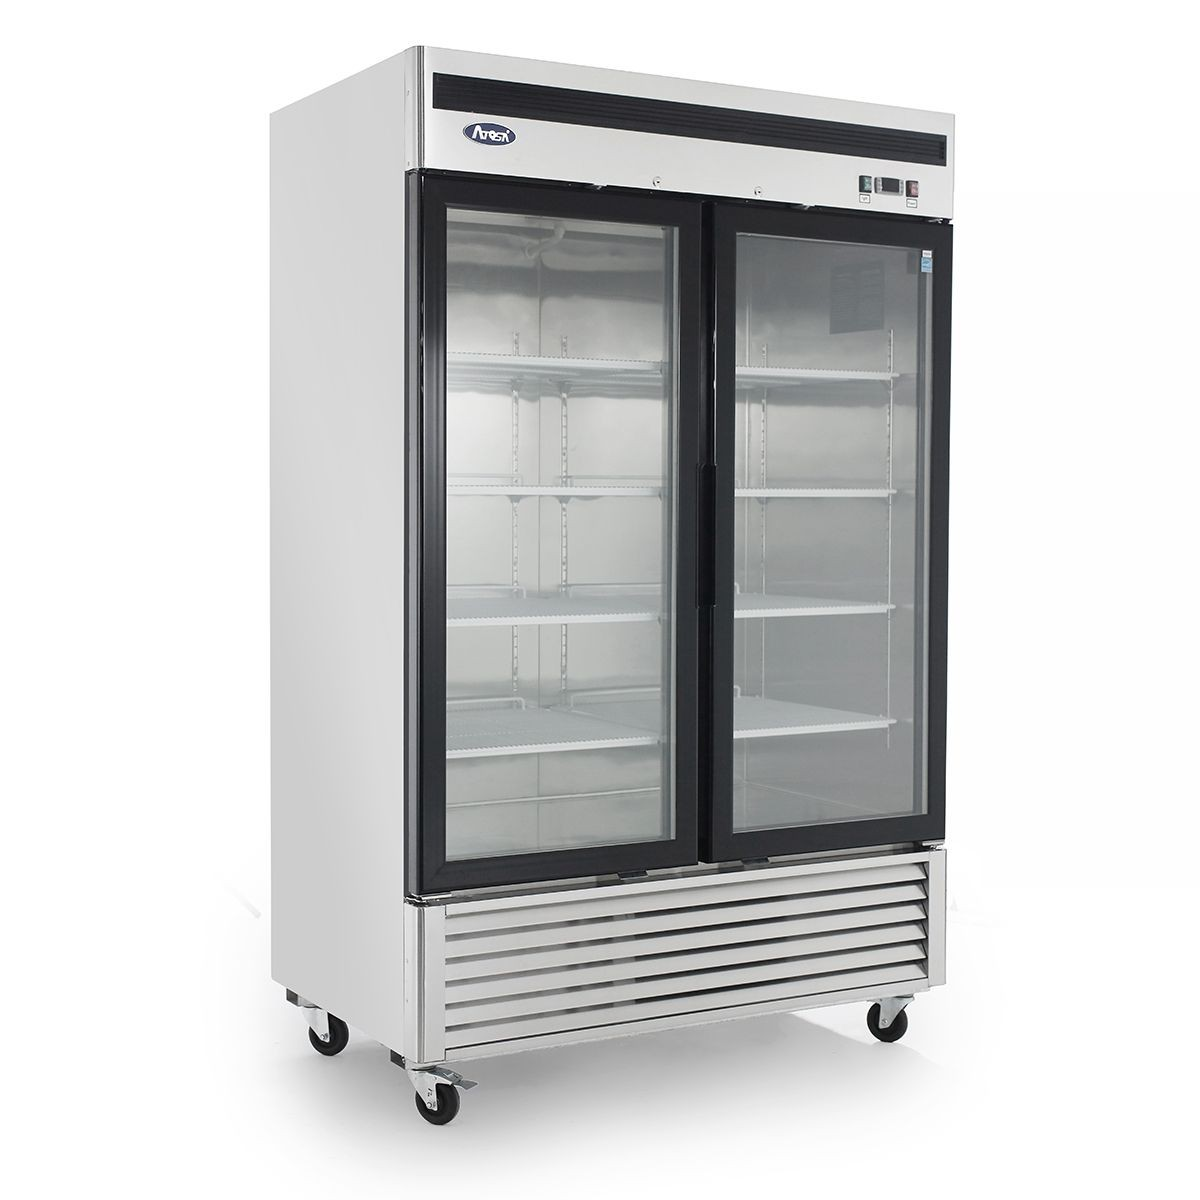 Atosa MCF8703 Bottom Mount Two Glass Door Freezer